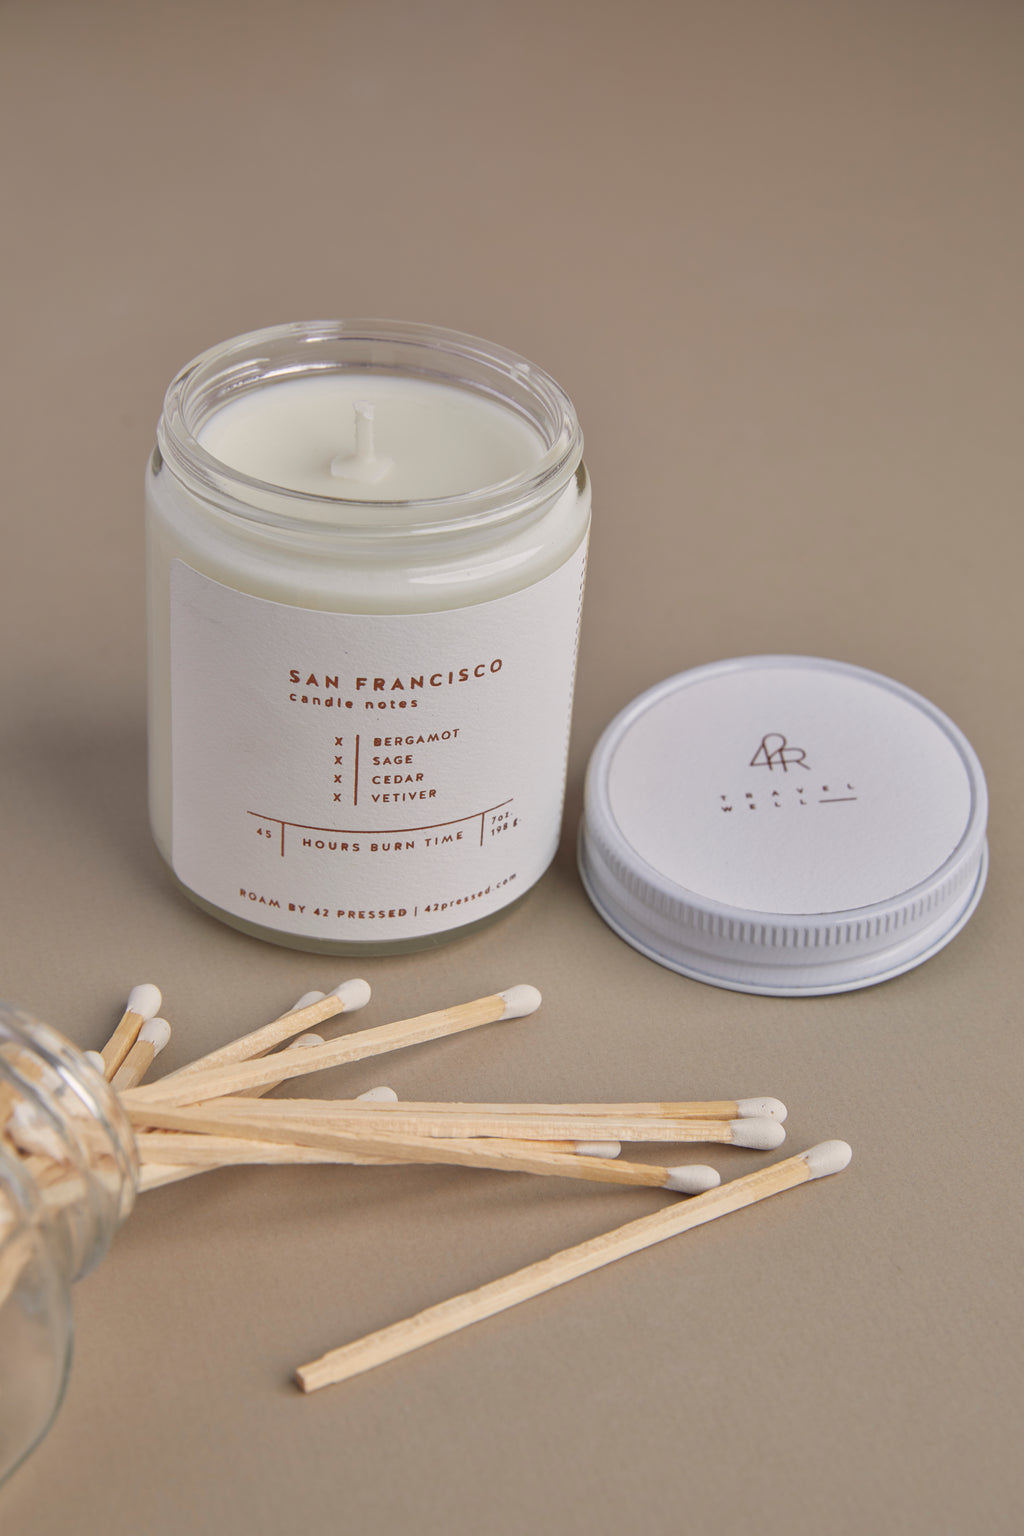 San Francisco Soy Wax Candle - P I C N I C